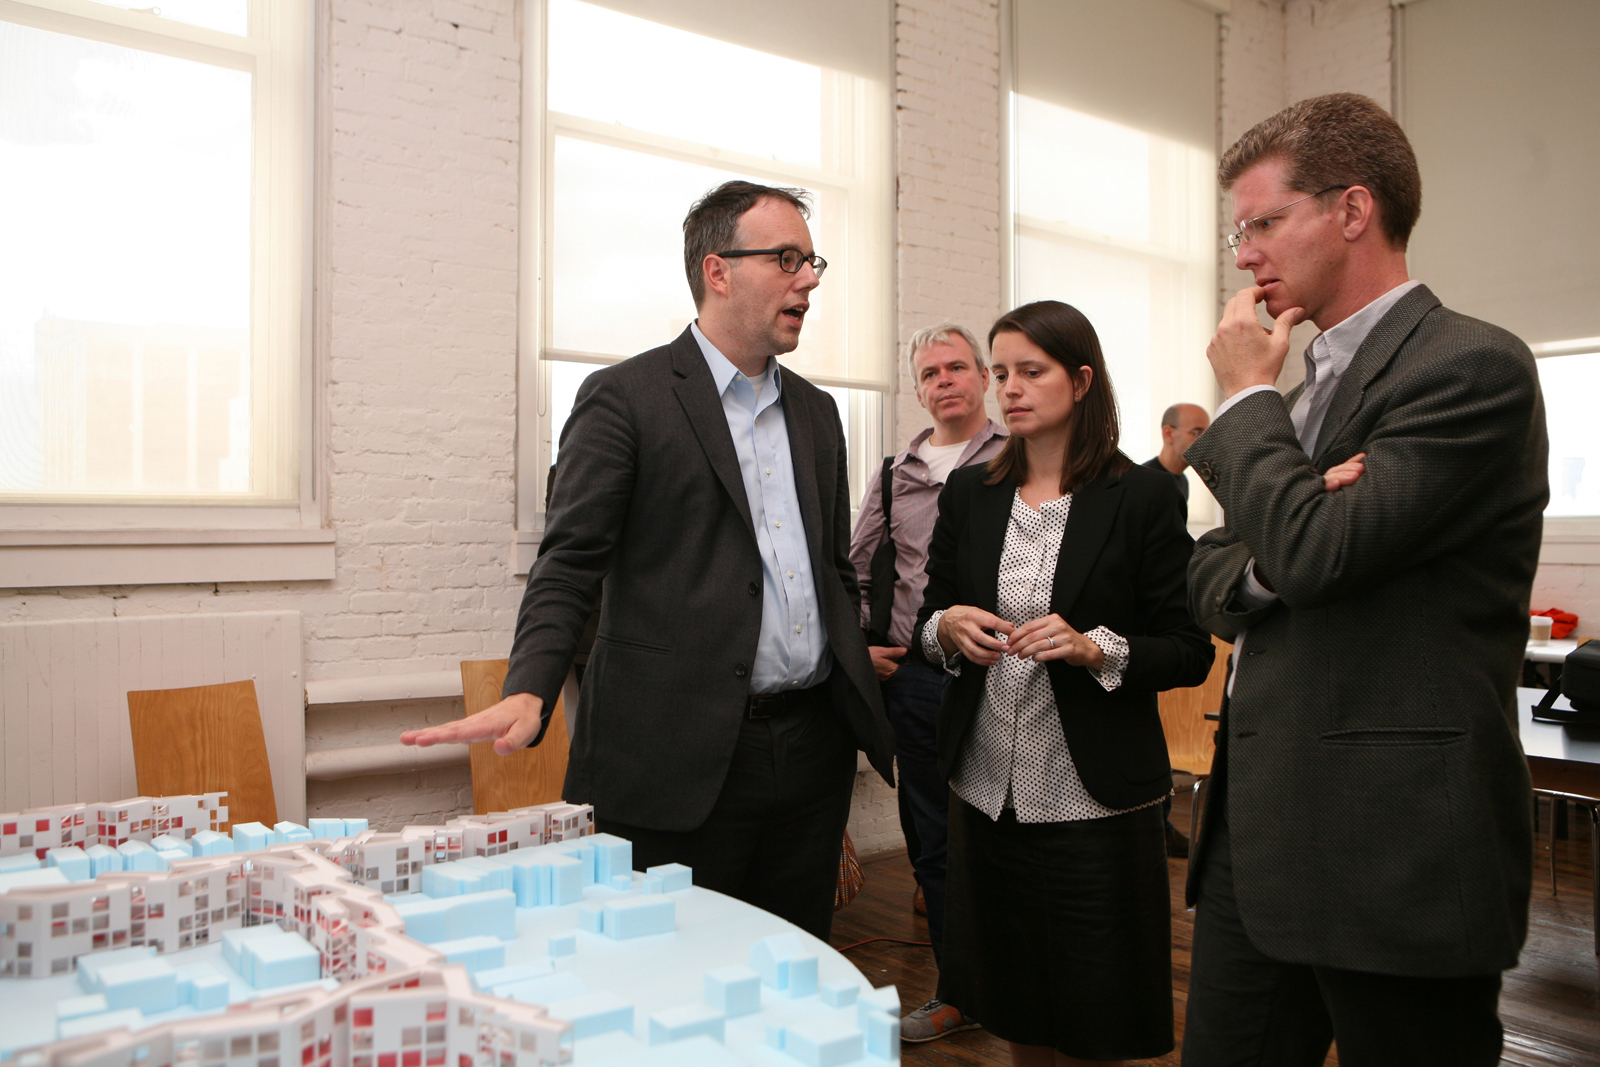 U.S. Secretary of Housing and Urban Development Shaun Donovan (right) discusses MOS's proposal with Michael Merideth and Hilary Sample.